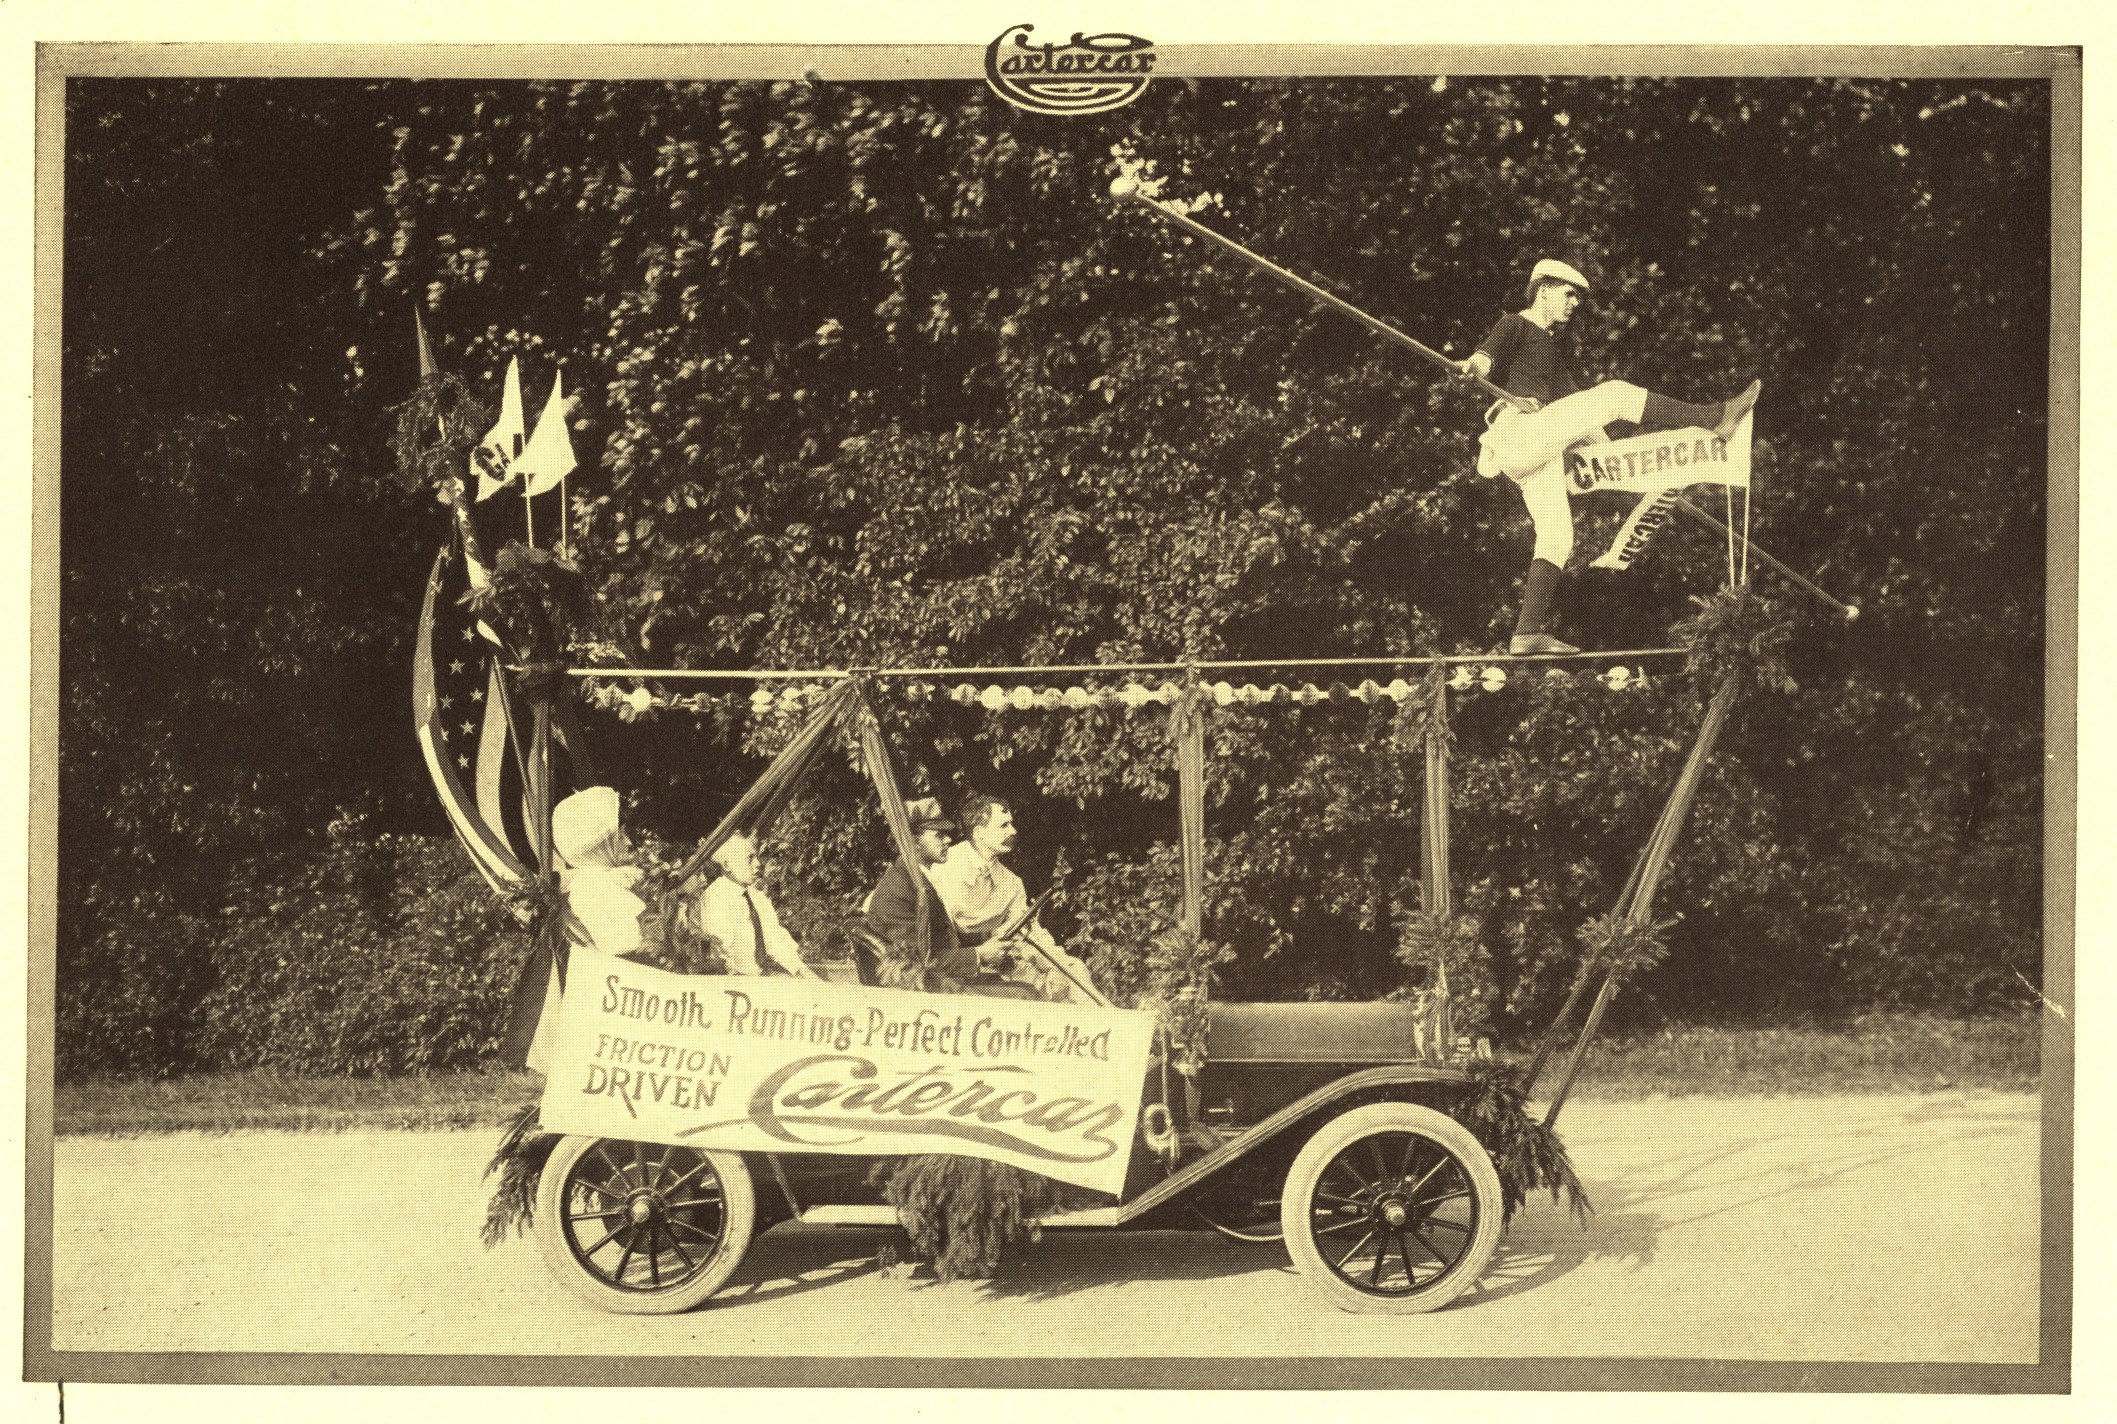 Doan and his balancing act - from circa 1910 Cartercar catalog